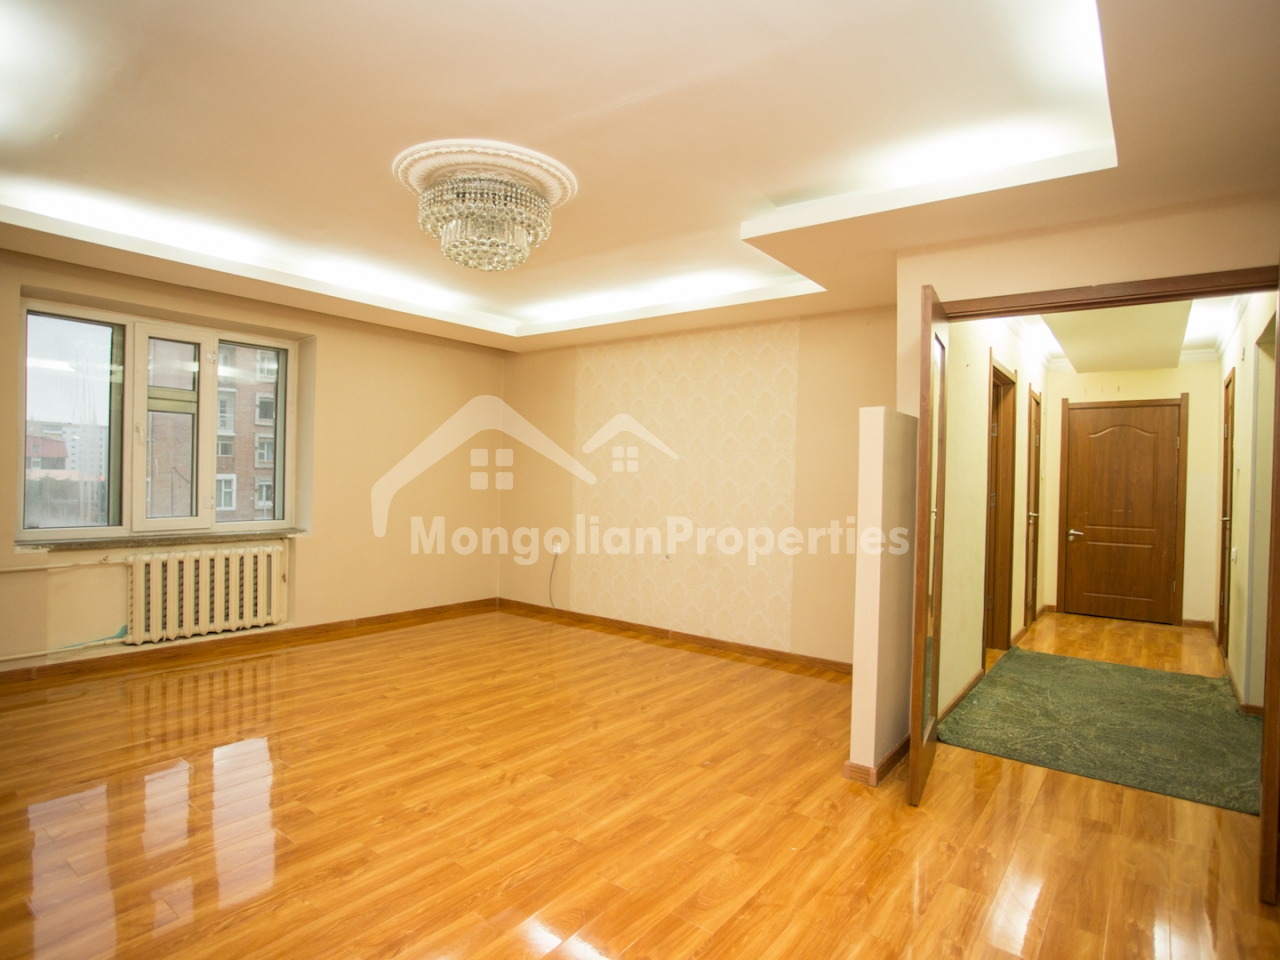 PERFECT LOCATION, BEAUTIFULLY RENOVATED 2 BEDROOM APARTMENT IS FOR RENT NEXT TO THE STATE DEPARTMENT STORE